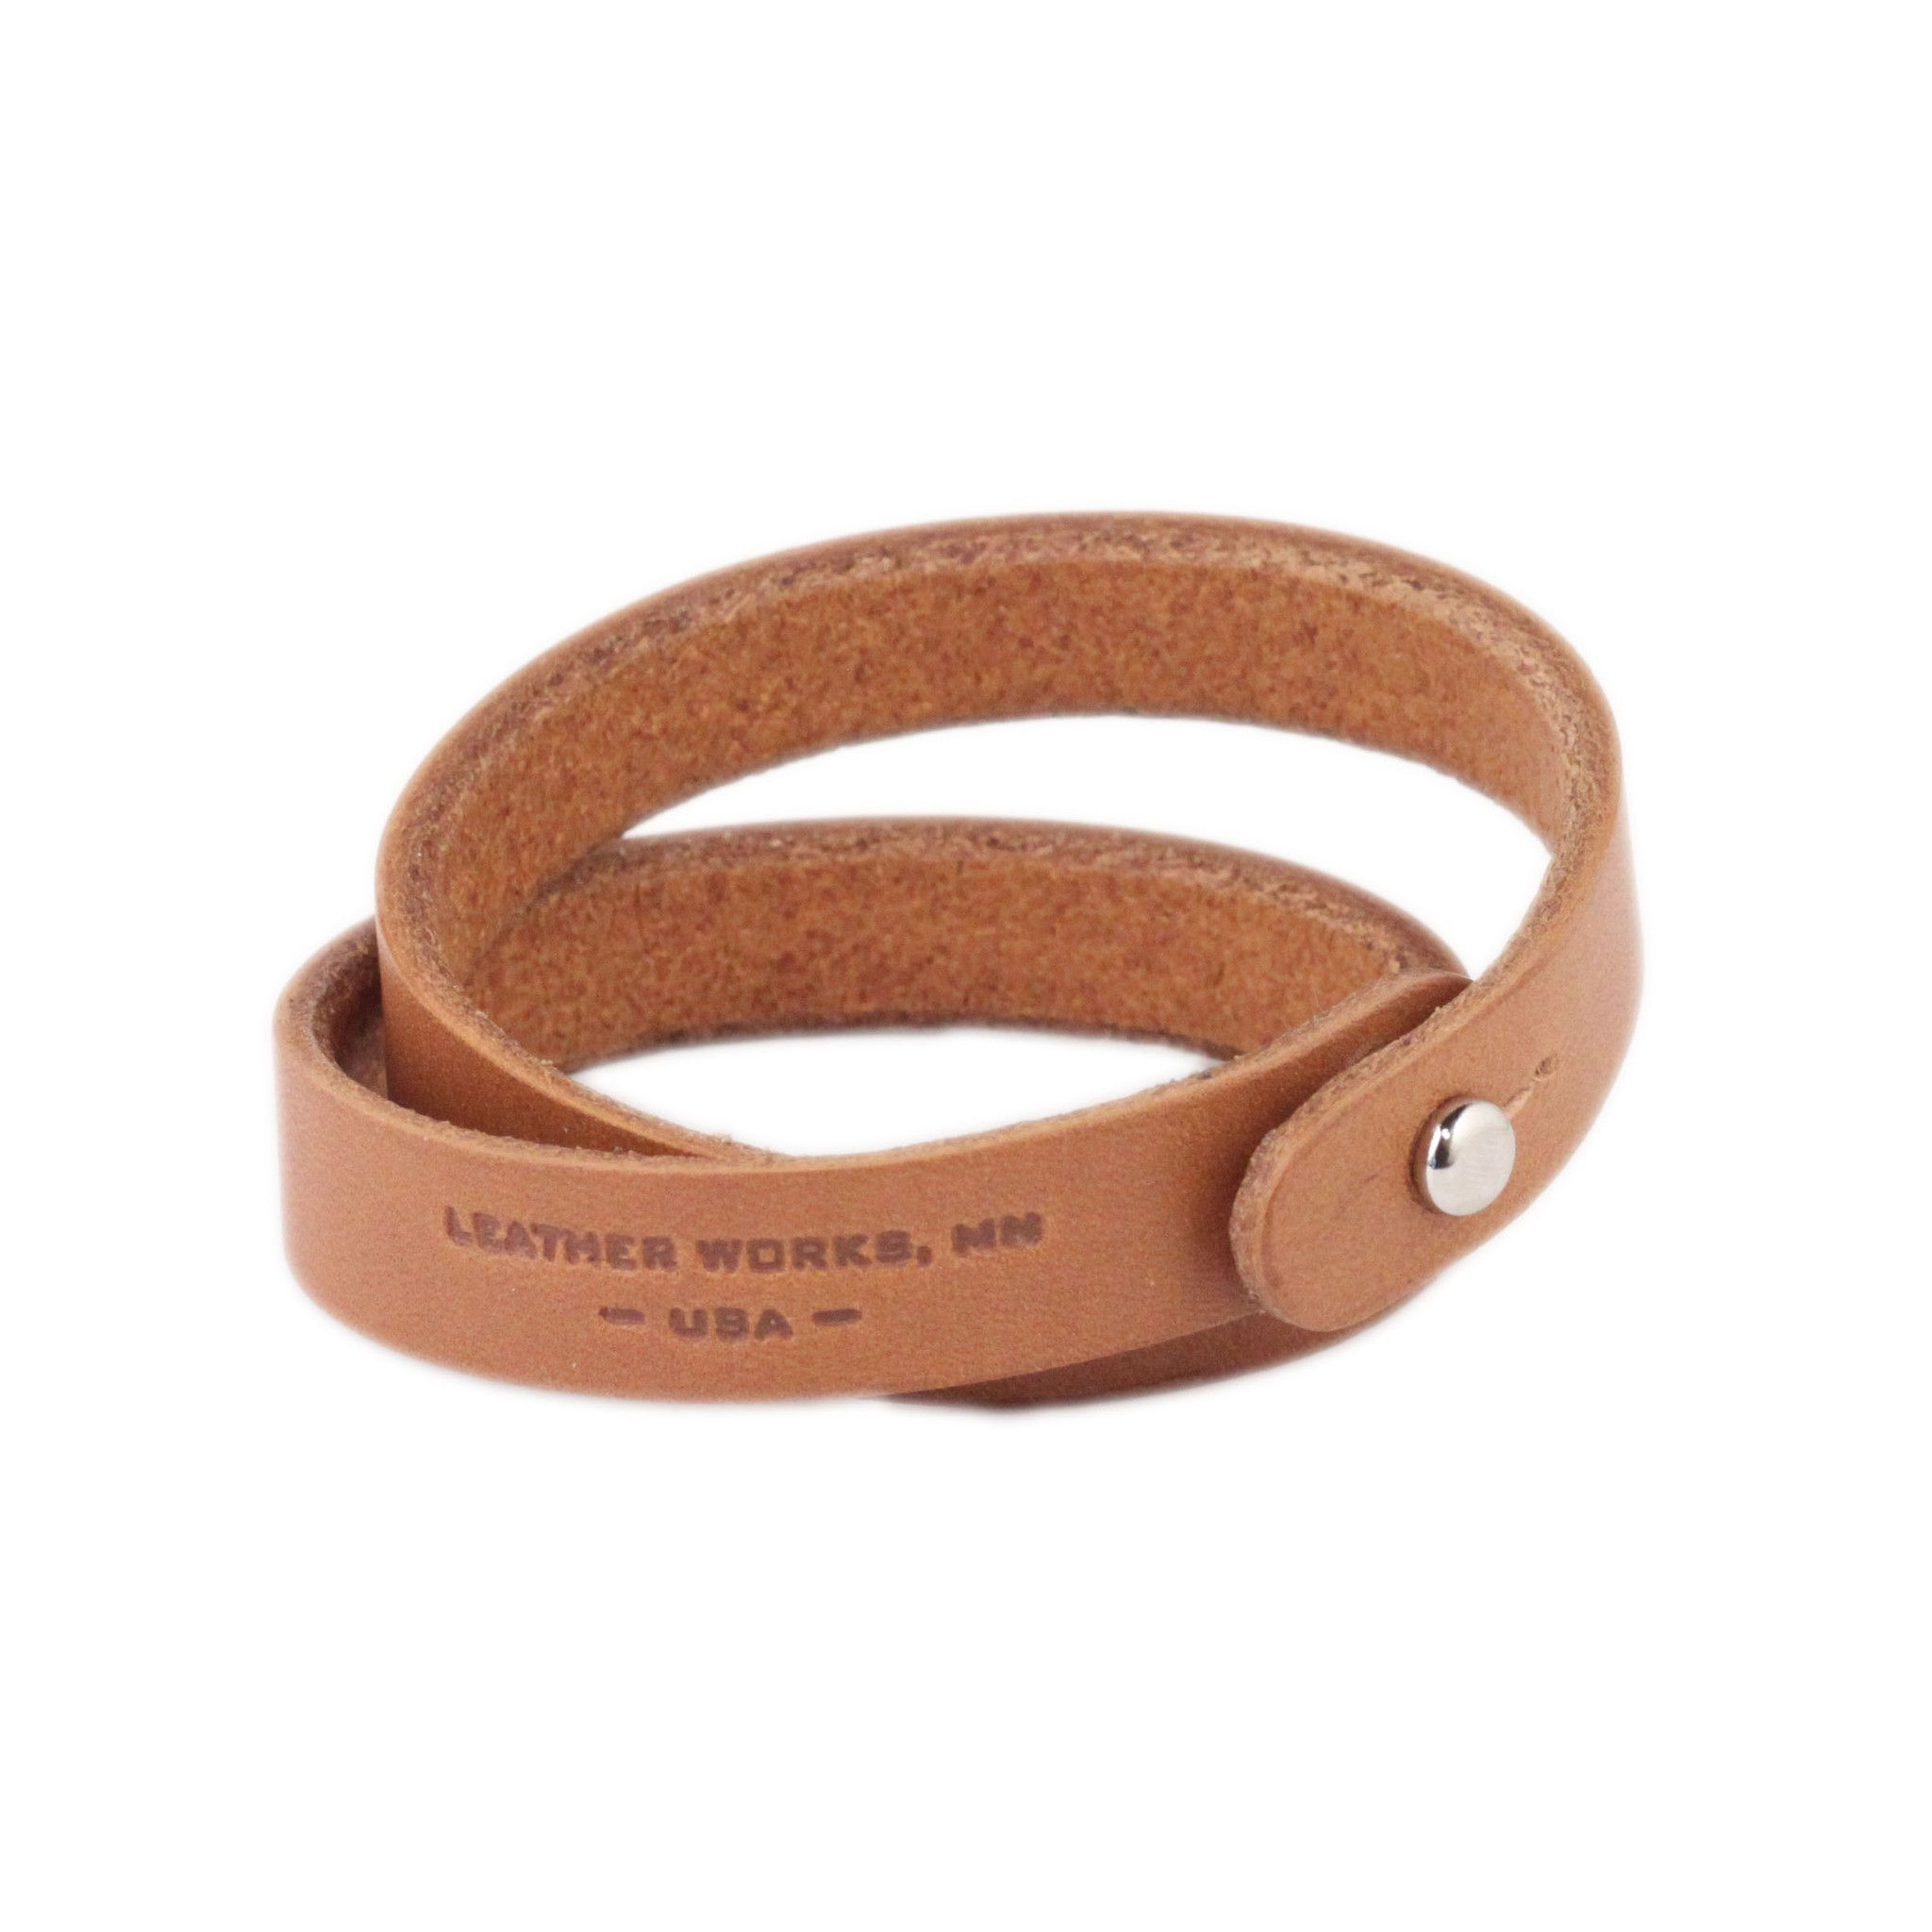 Leather Works // Bracelet - Double, Tan from Hudson Supply Co.